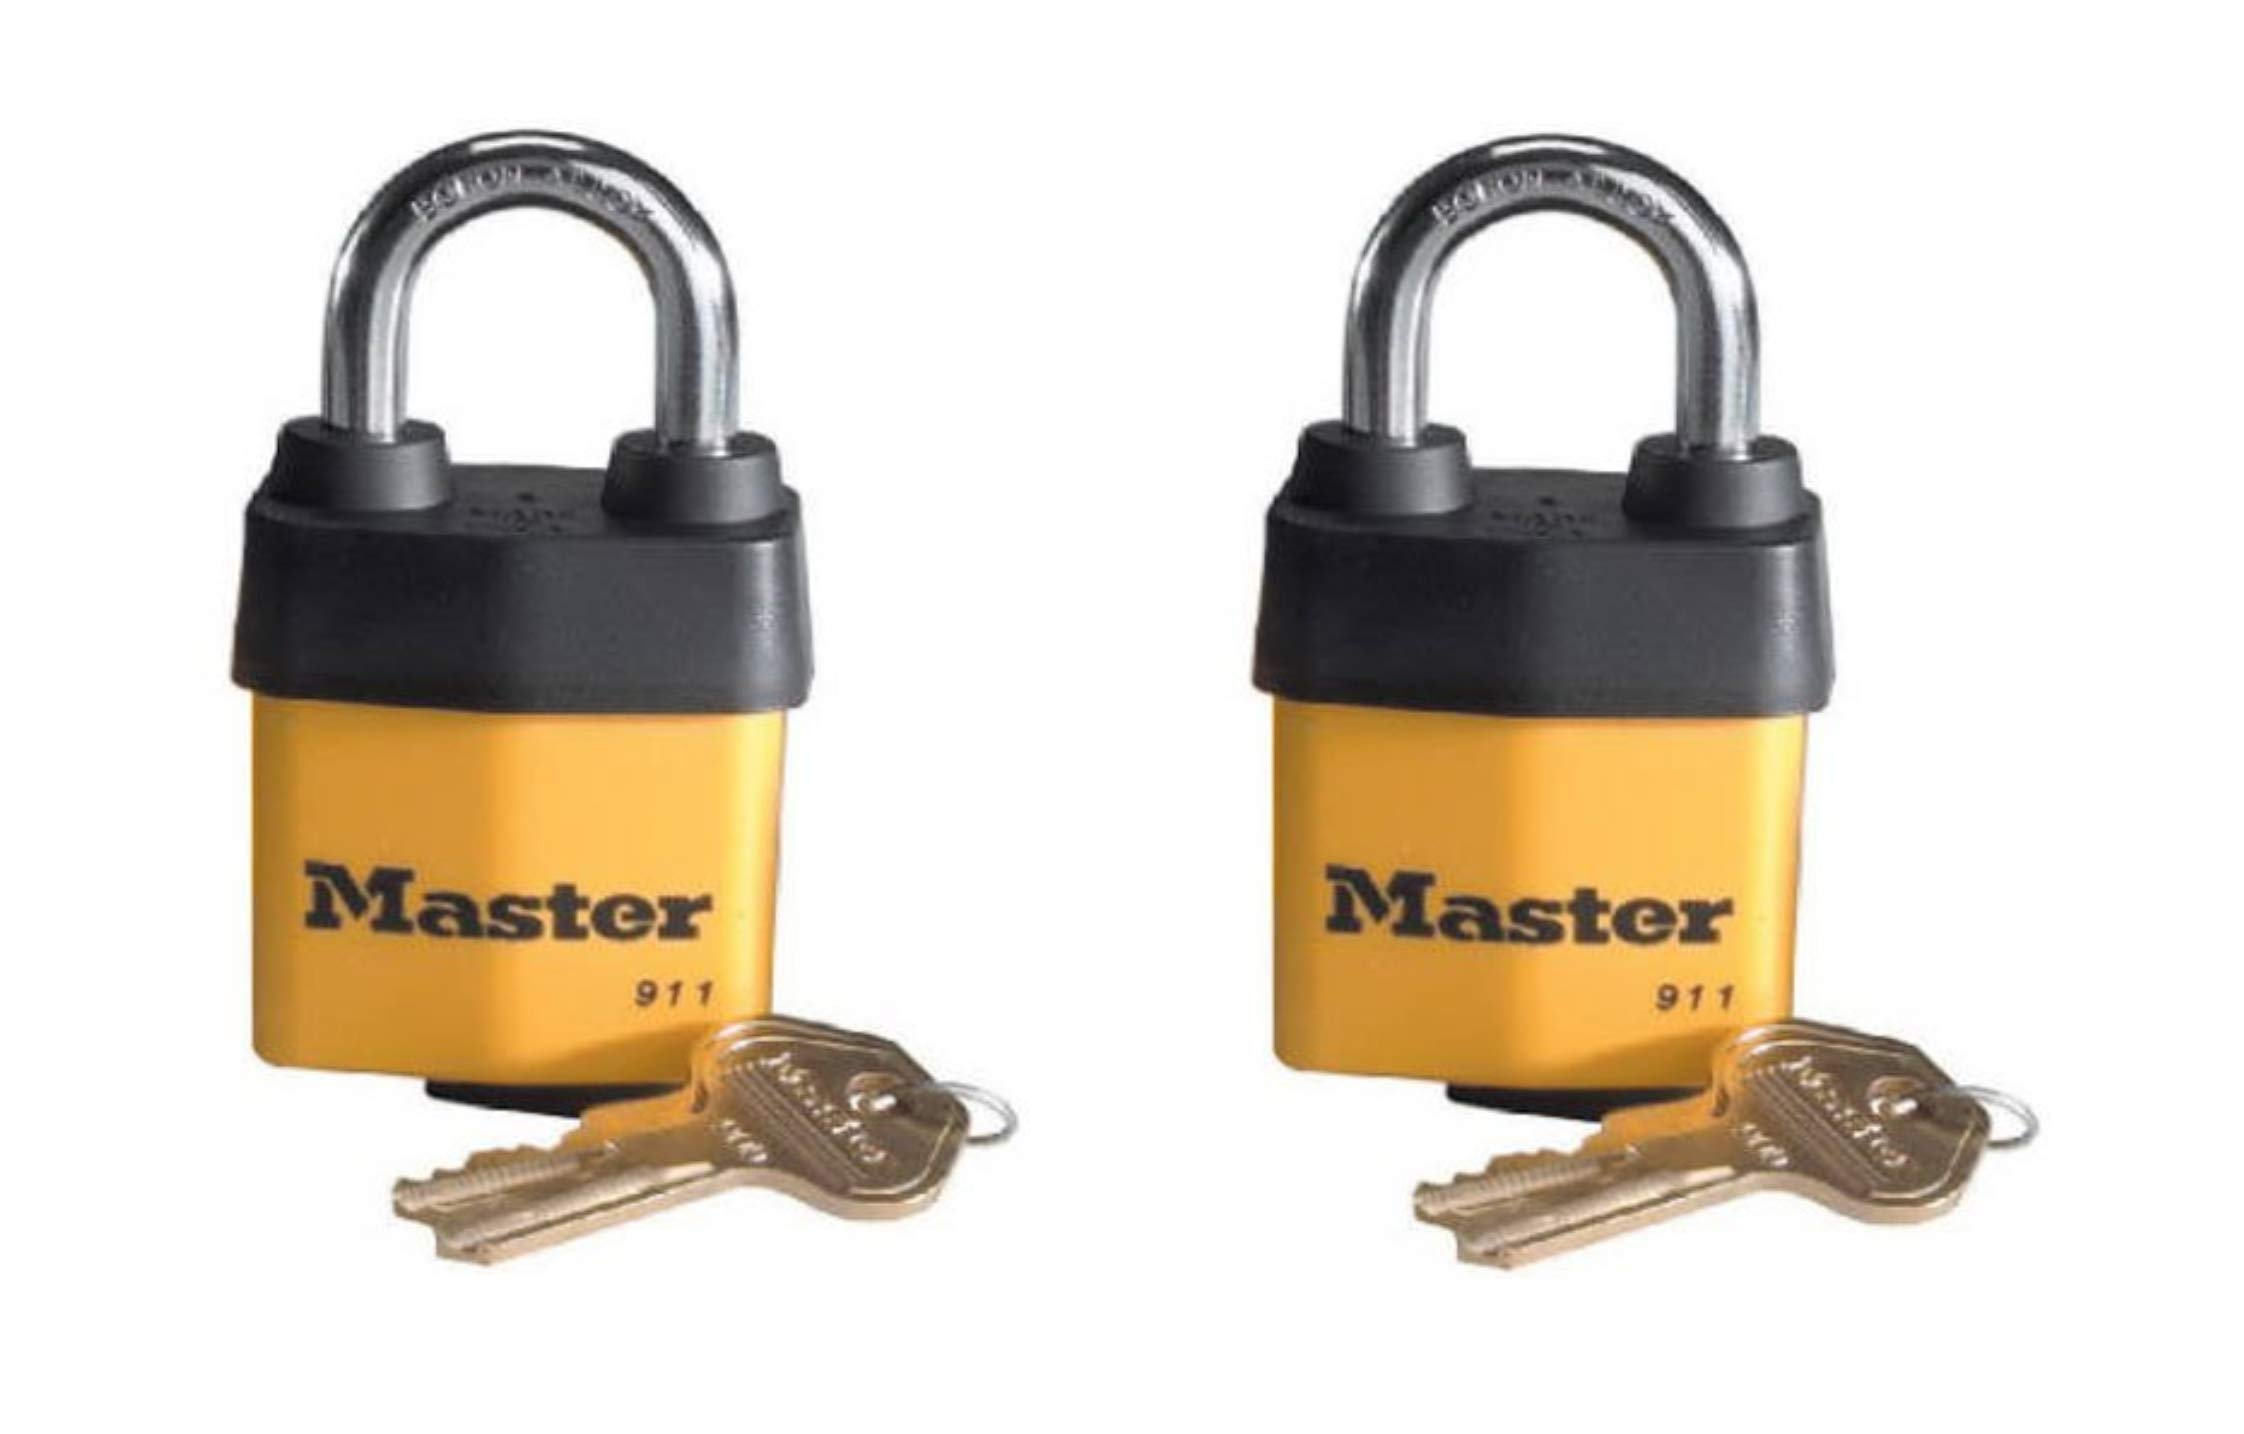 Master Lock Padlock, Covered Laminated Steel Lock, 911DPF,  2 Pack by Master Lock